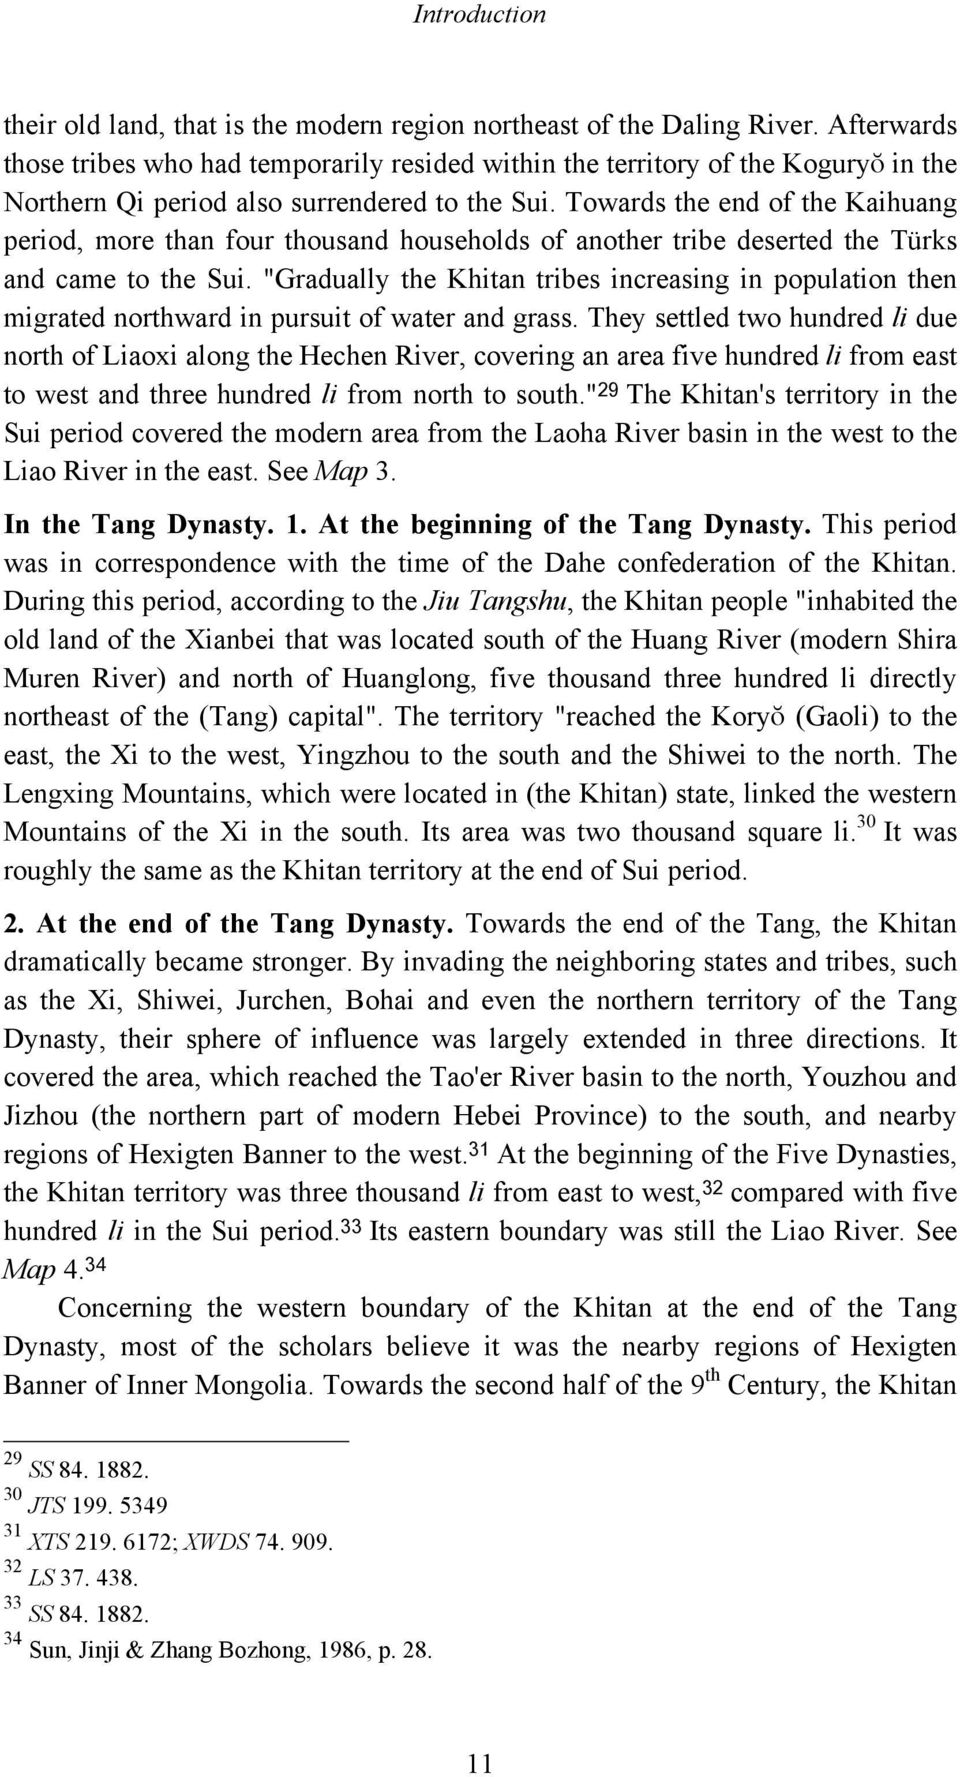 Towards the end of the Kaihuang period, more than four thousand households of another tribe deserted the Türks and came to the Sui.